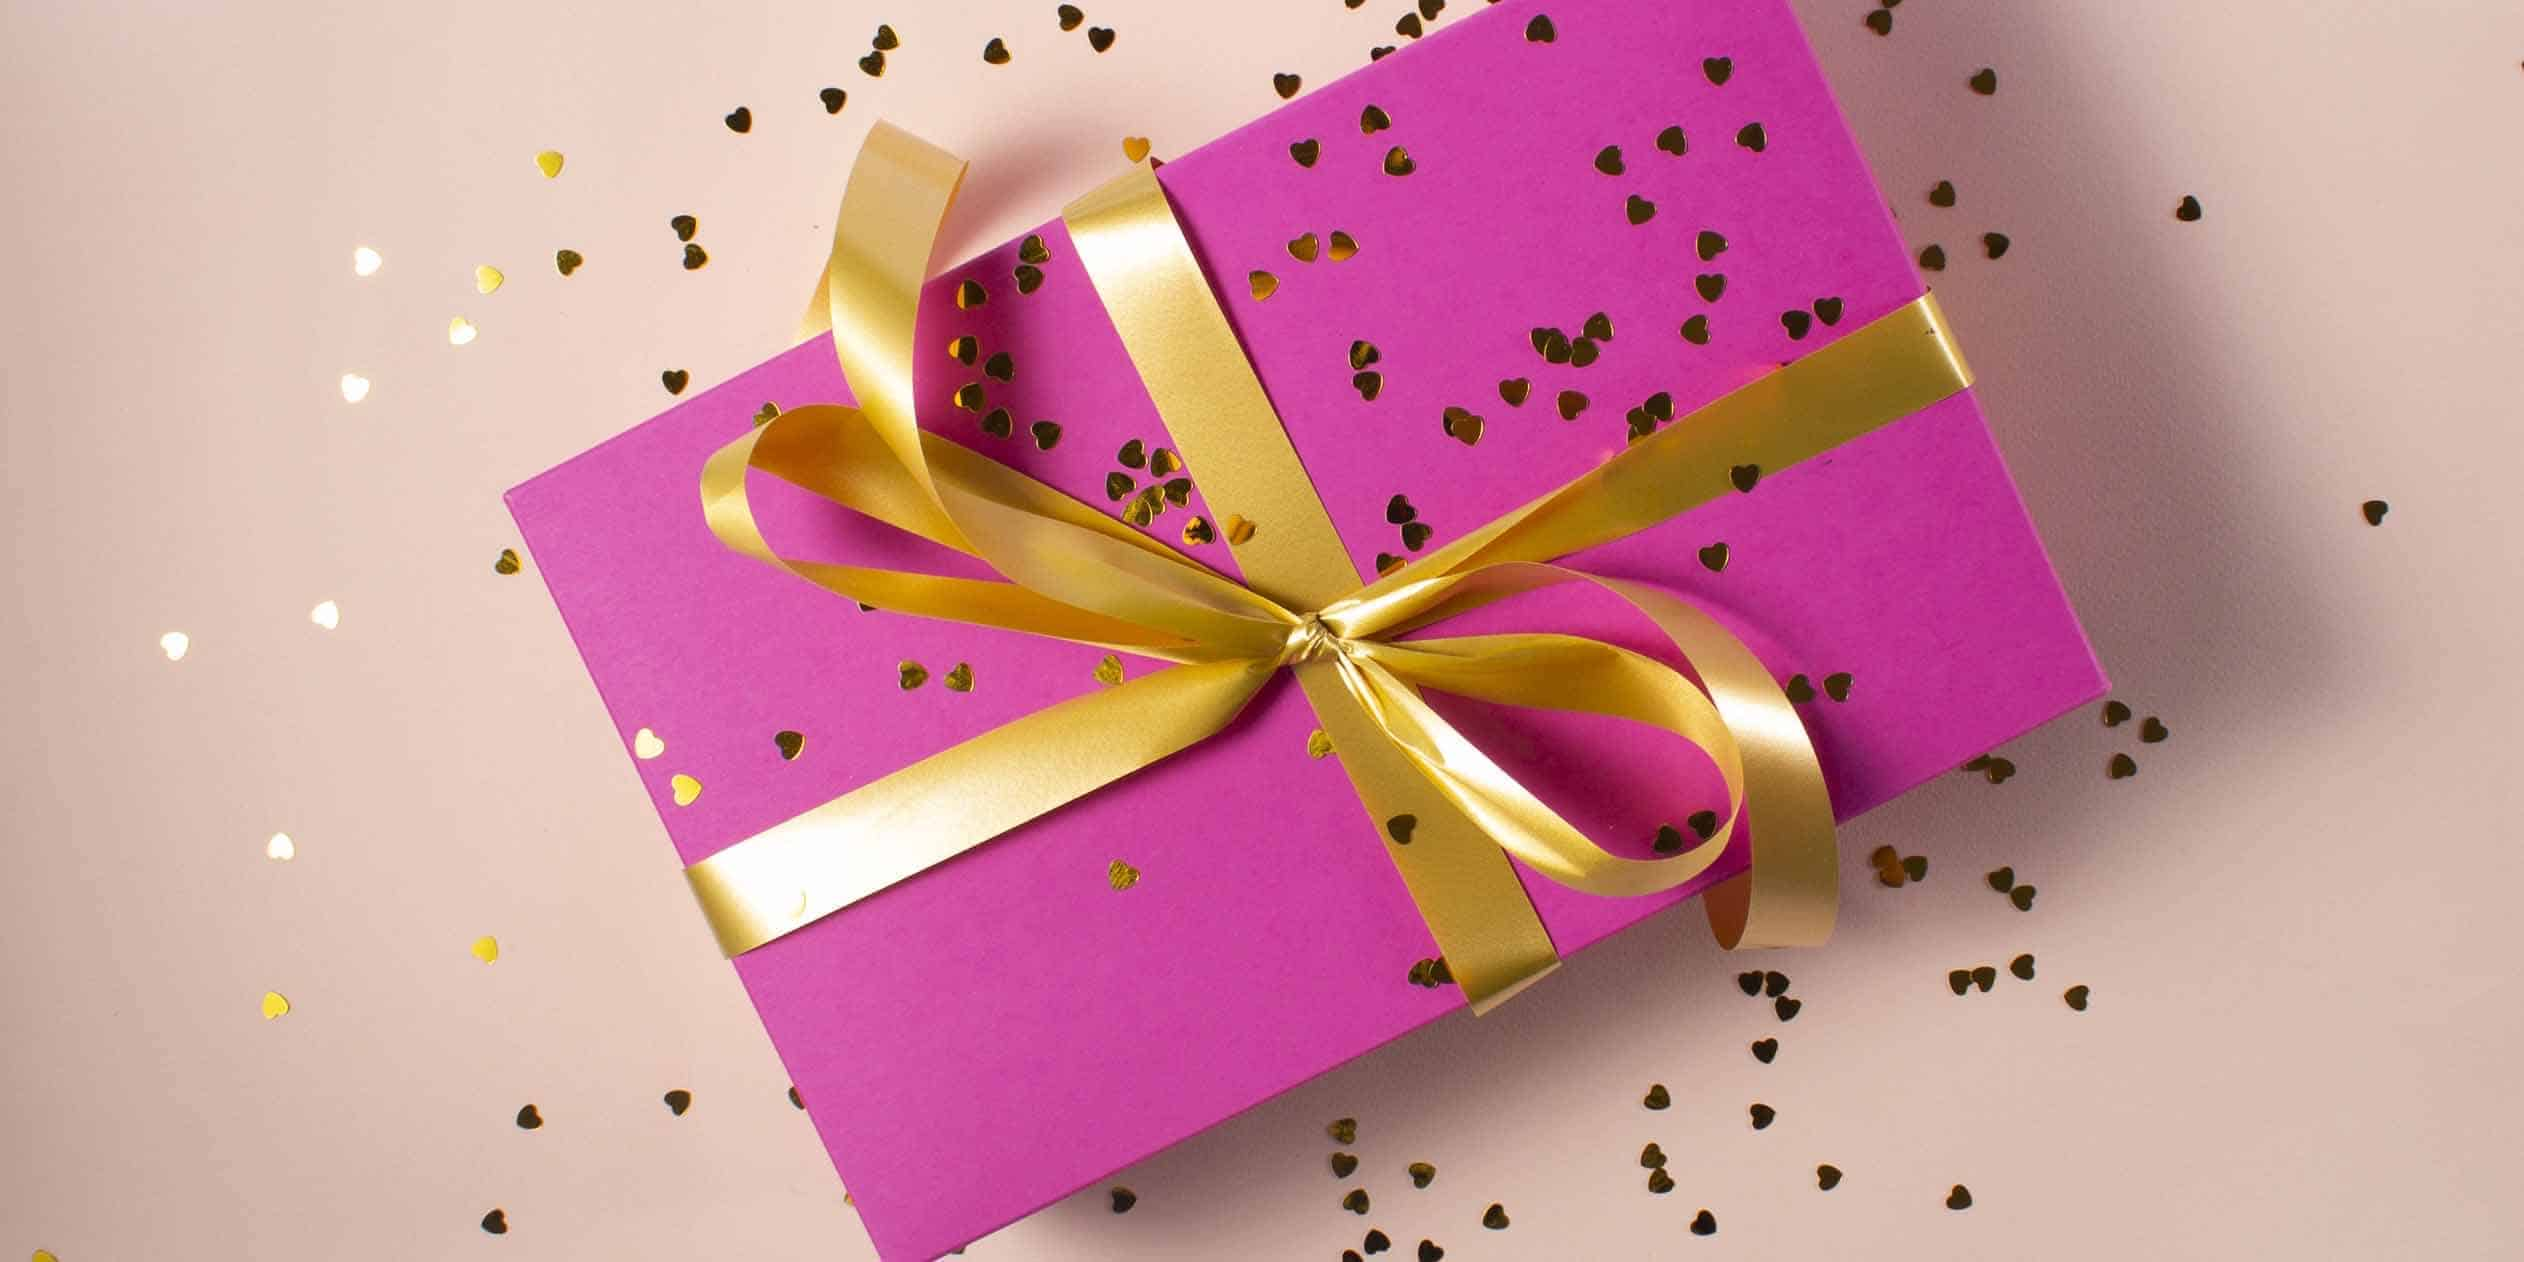 A pink box wrapped in a gold ribbon, covered in gold confetti.